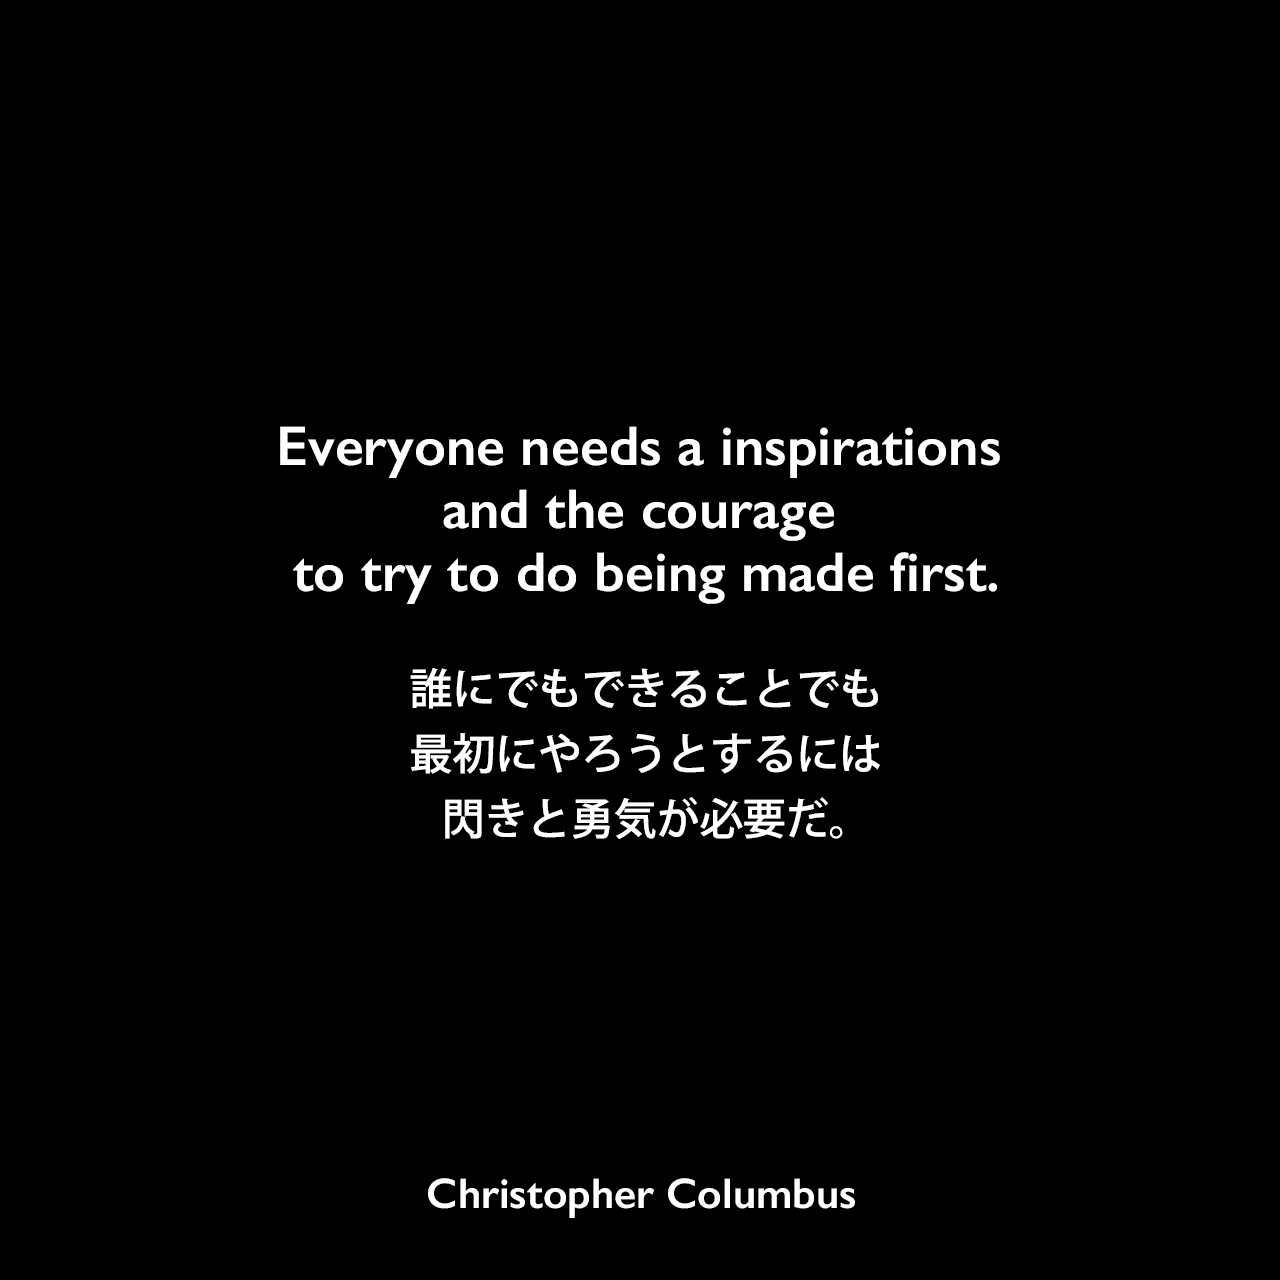 Everyone needs a inspirations and the courage to try to do being made first.誰にでもできることでも、最初にやろうとするには閃きと勇気が必要だ。Christopher Columbus